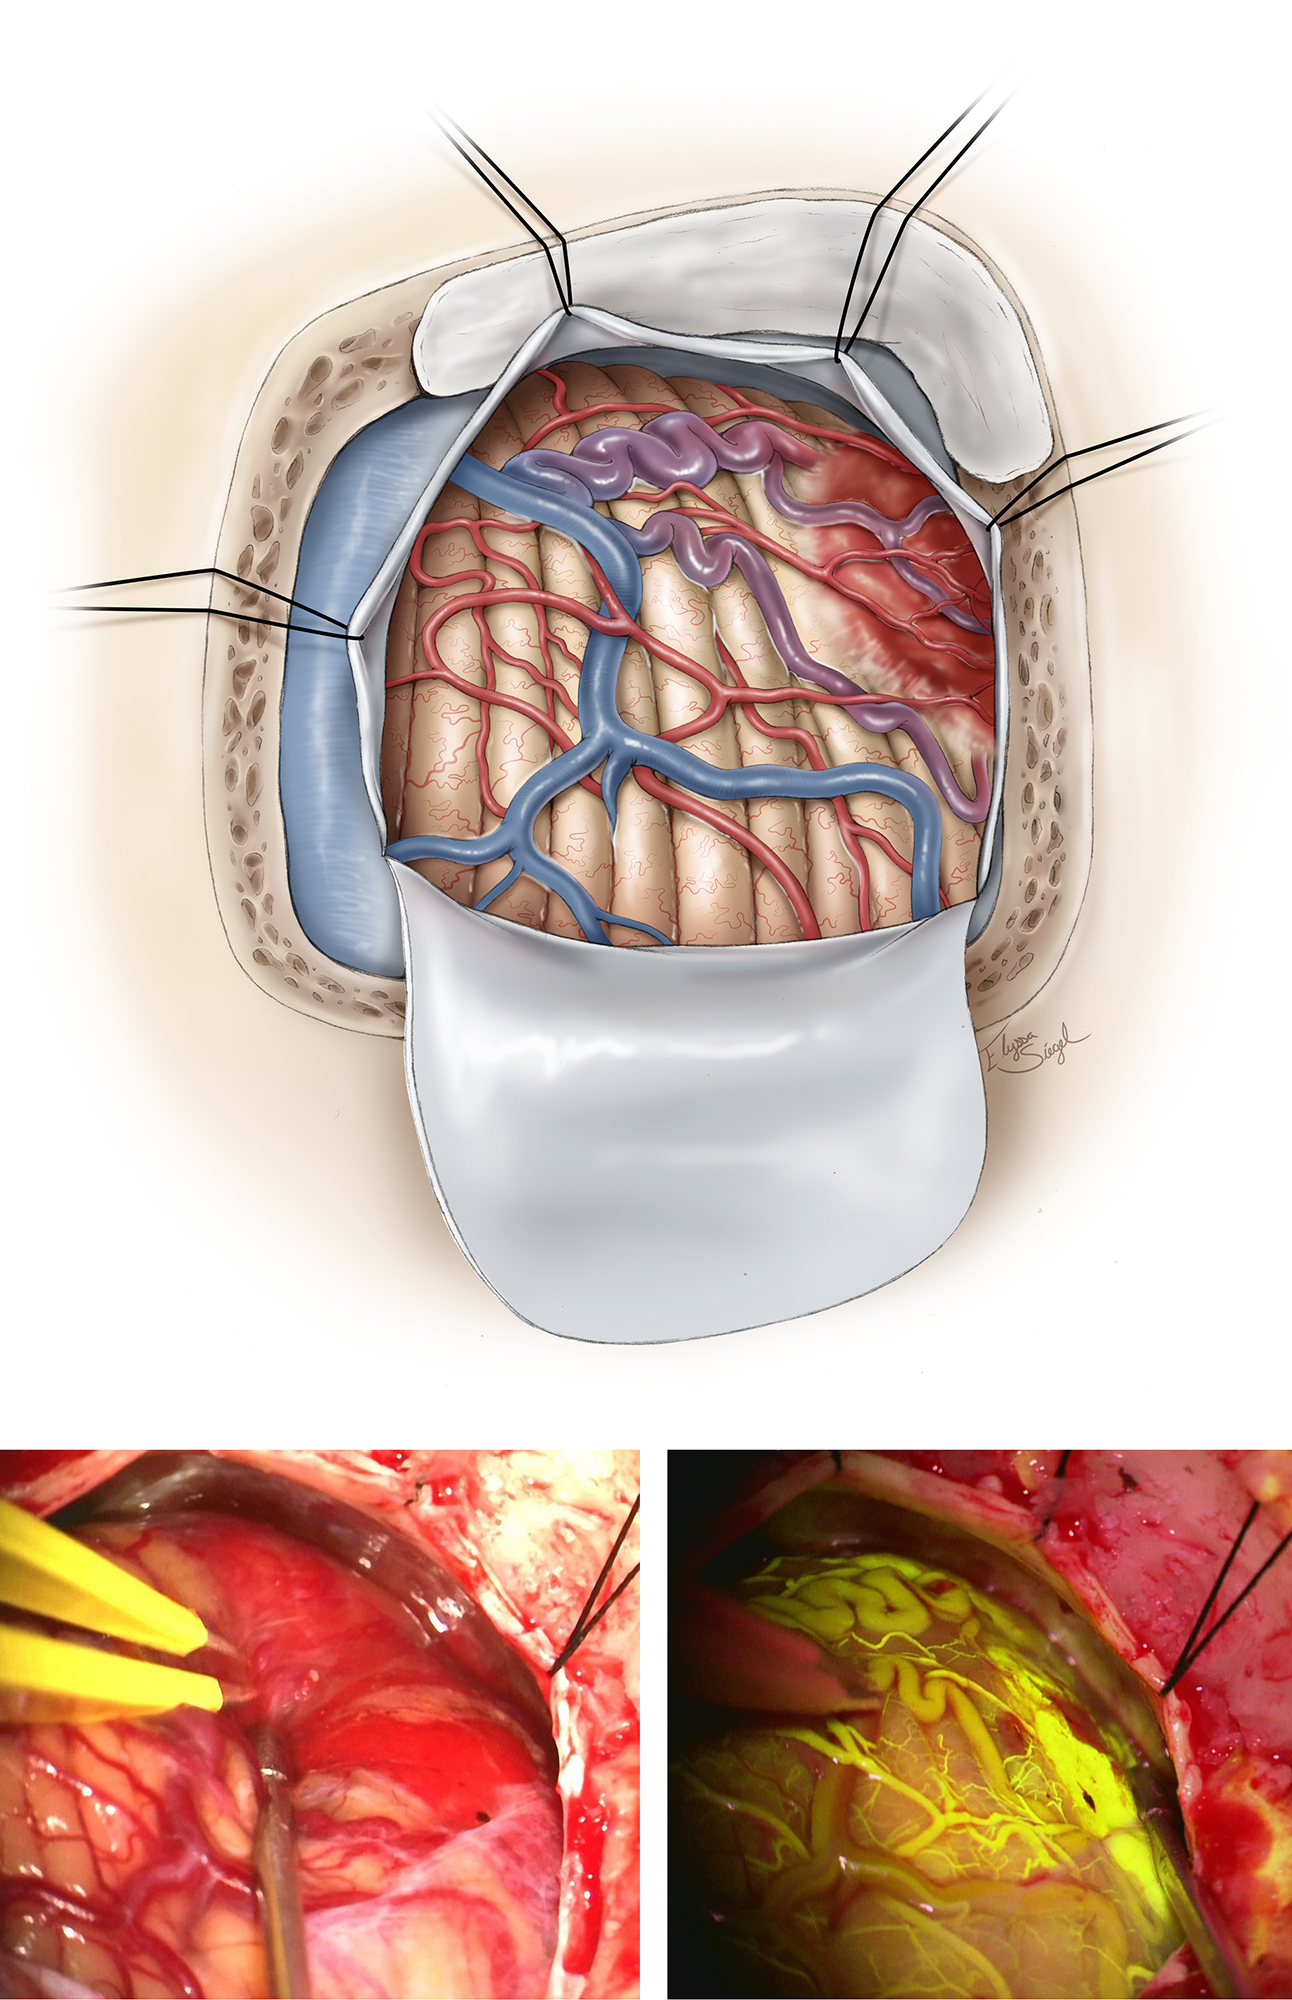 Figure 5: Intradural exposure and identification of the nodule. Nodules may protrude through the cerebellar cortex or reside just under the surface while discoloring the pial surface and recruiting feeding arteries and draining veins. They may be deep and difficult to find if the cyst wall is collapsed. If the nodule is not on the surface, but instead on a deeper aspect of the cyst, it may be flattened or nondistinct in color or shape, making it challenging to localize. The feeding arteries and draining veins of the nodule, reminiscent of an AVM angioarchitecture, are apparent (upper image). The vascular anatomy of the lesion is better demonstrated through fluorescein angiography (right lower image). The nodule is uniformly highlighted.